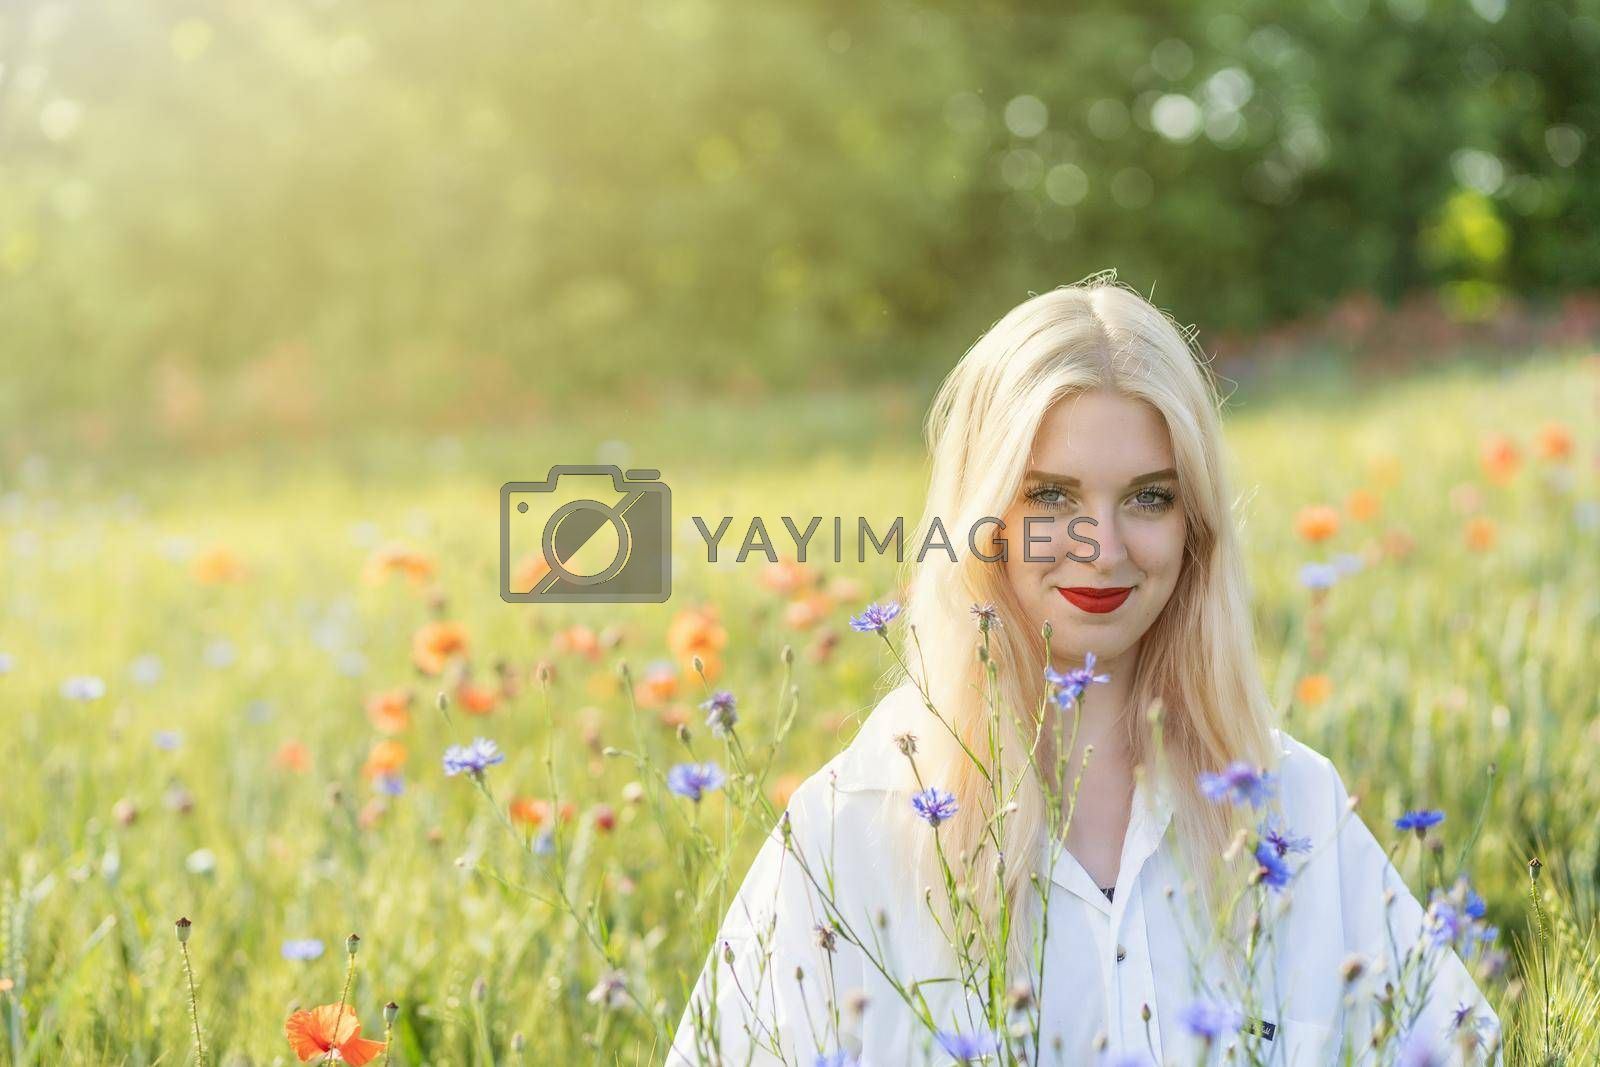 Royalty free image of Blonde young woman posing in summer flower meadow.  by Frank11